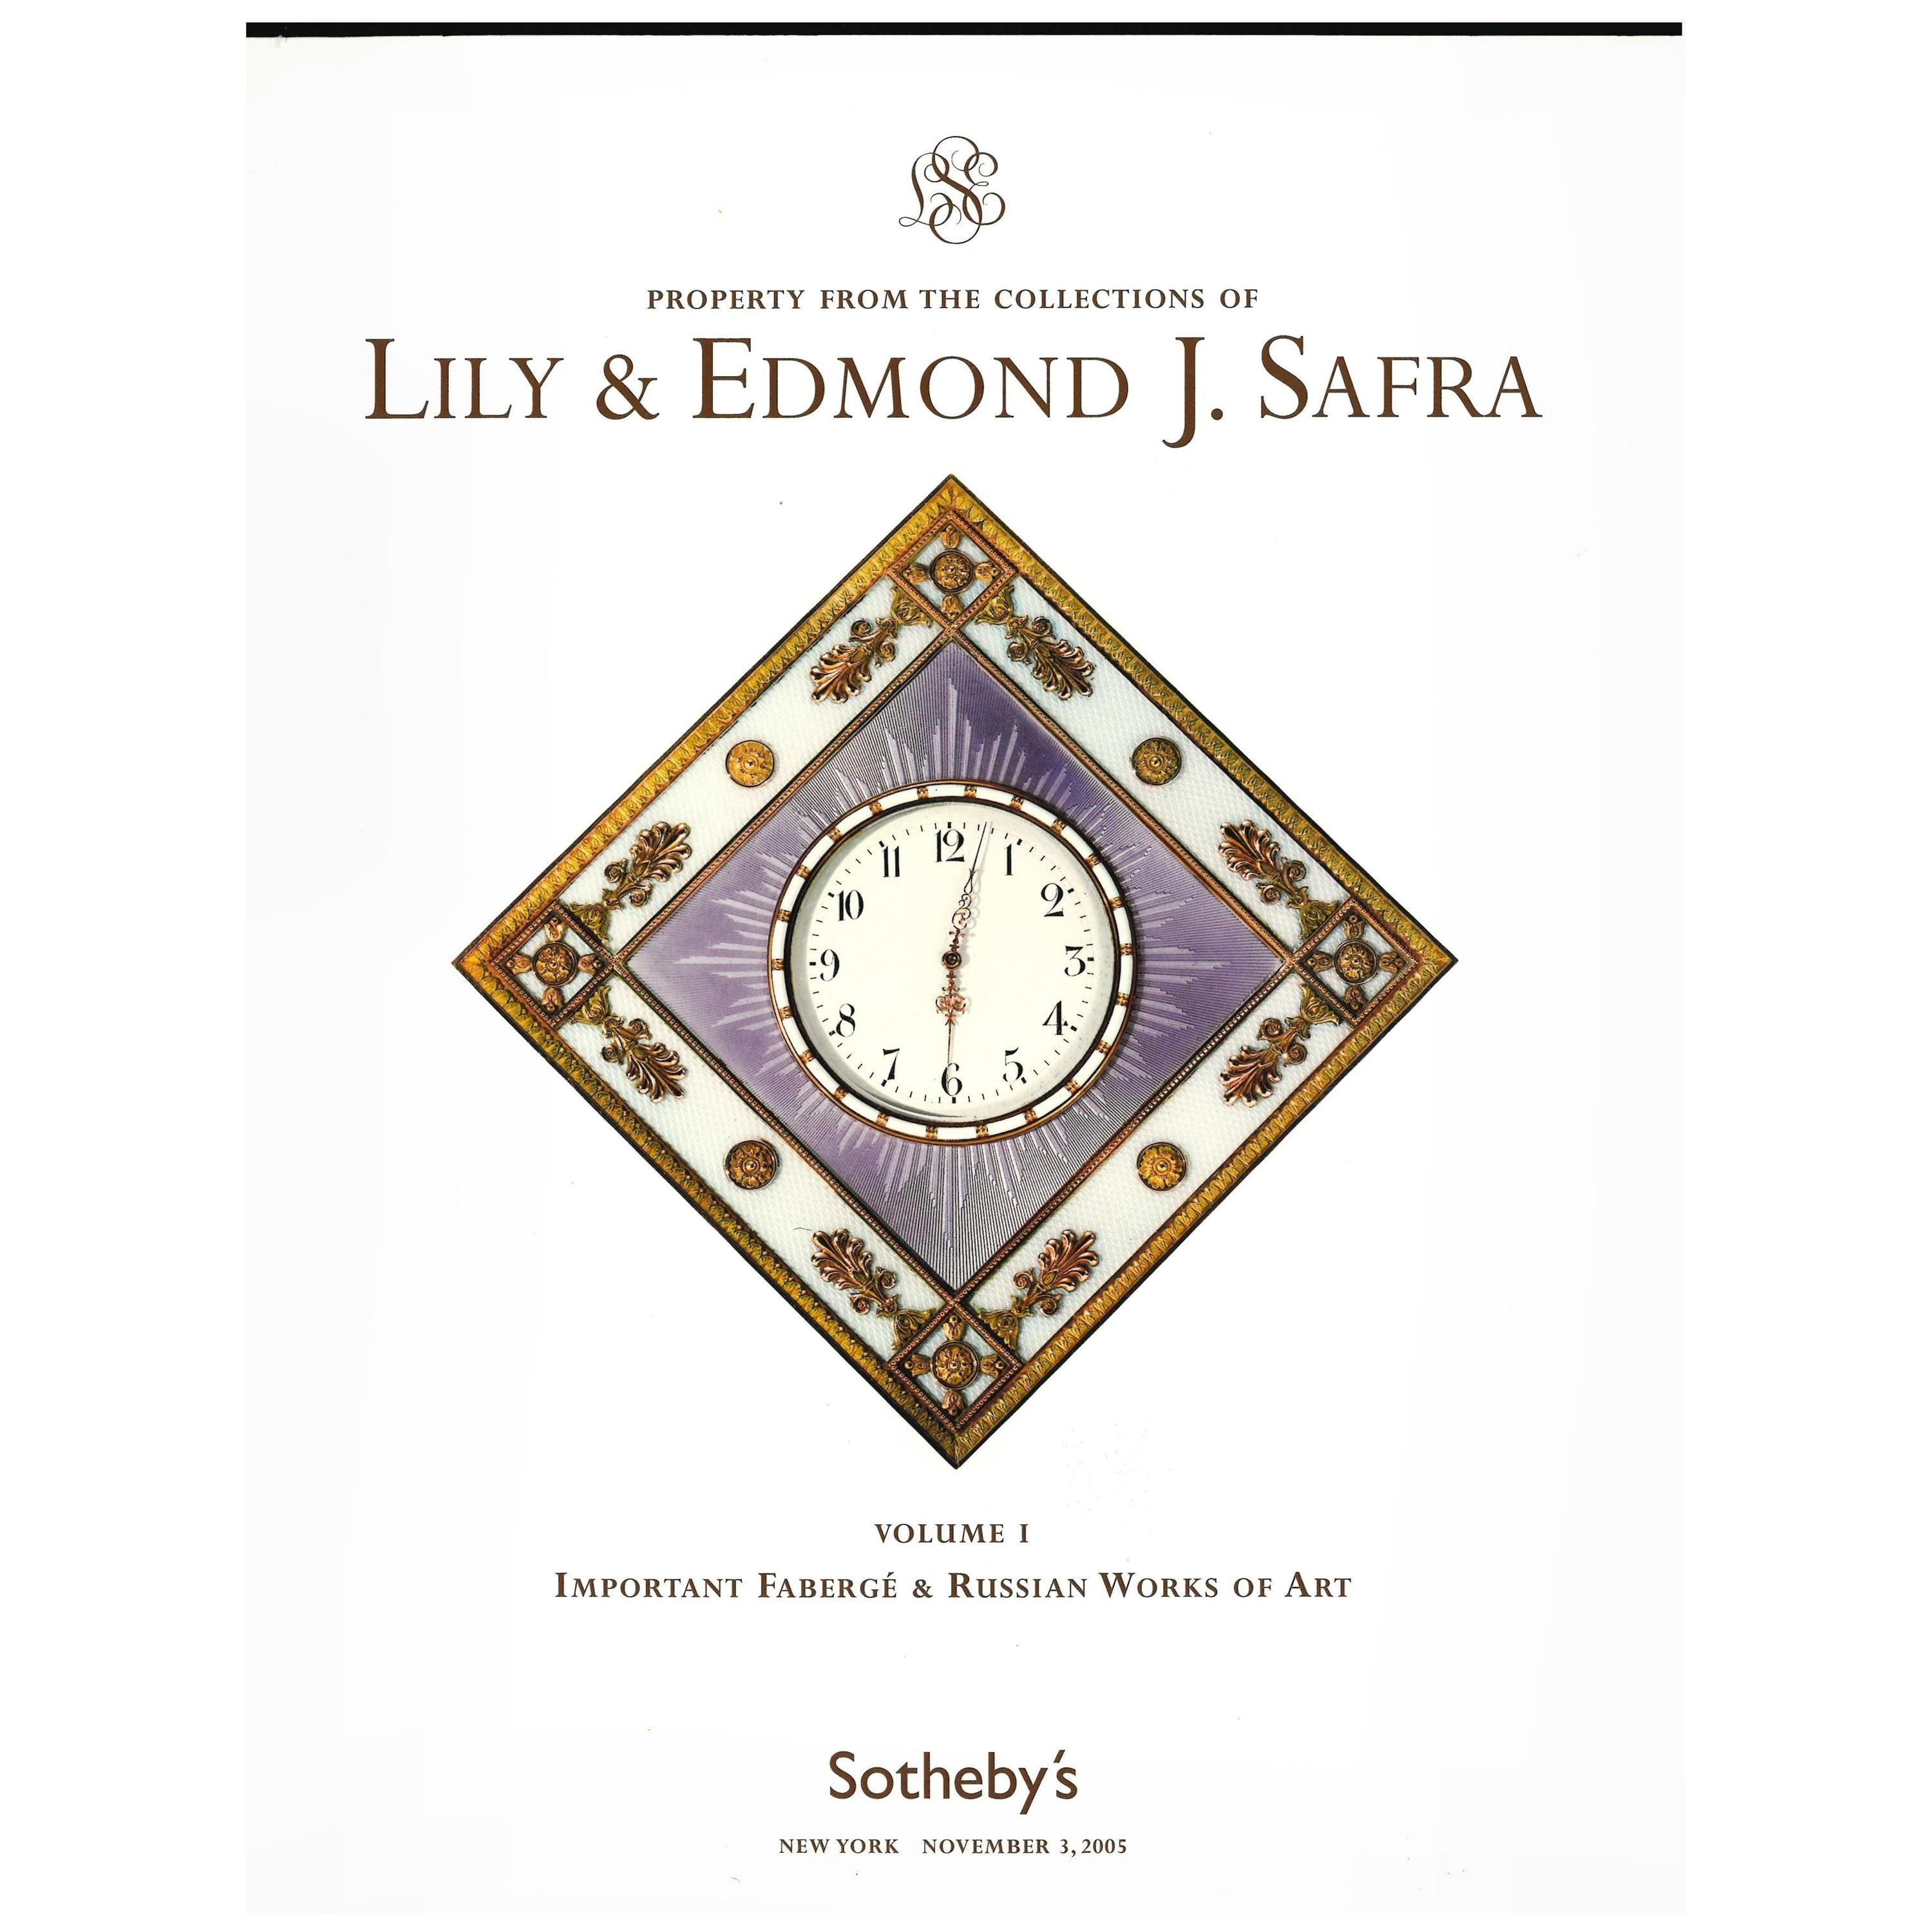 Sotheby's November 2005, Lily & Edmond Safra Collection Sale Catalogues